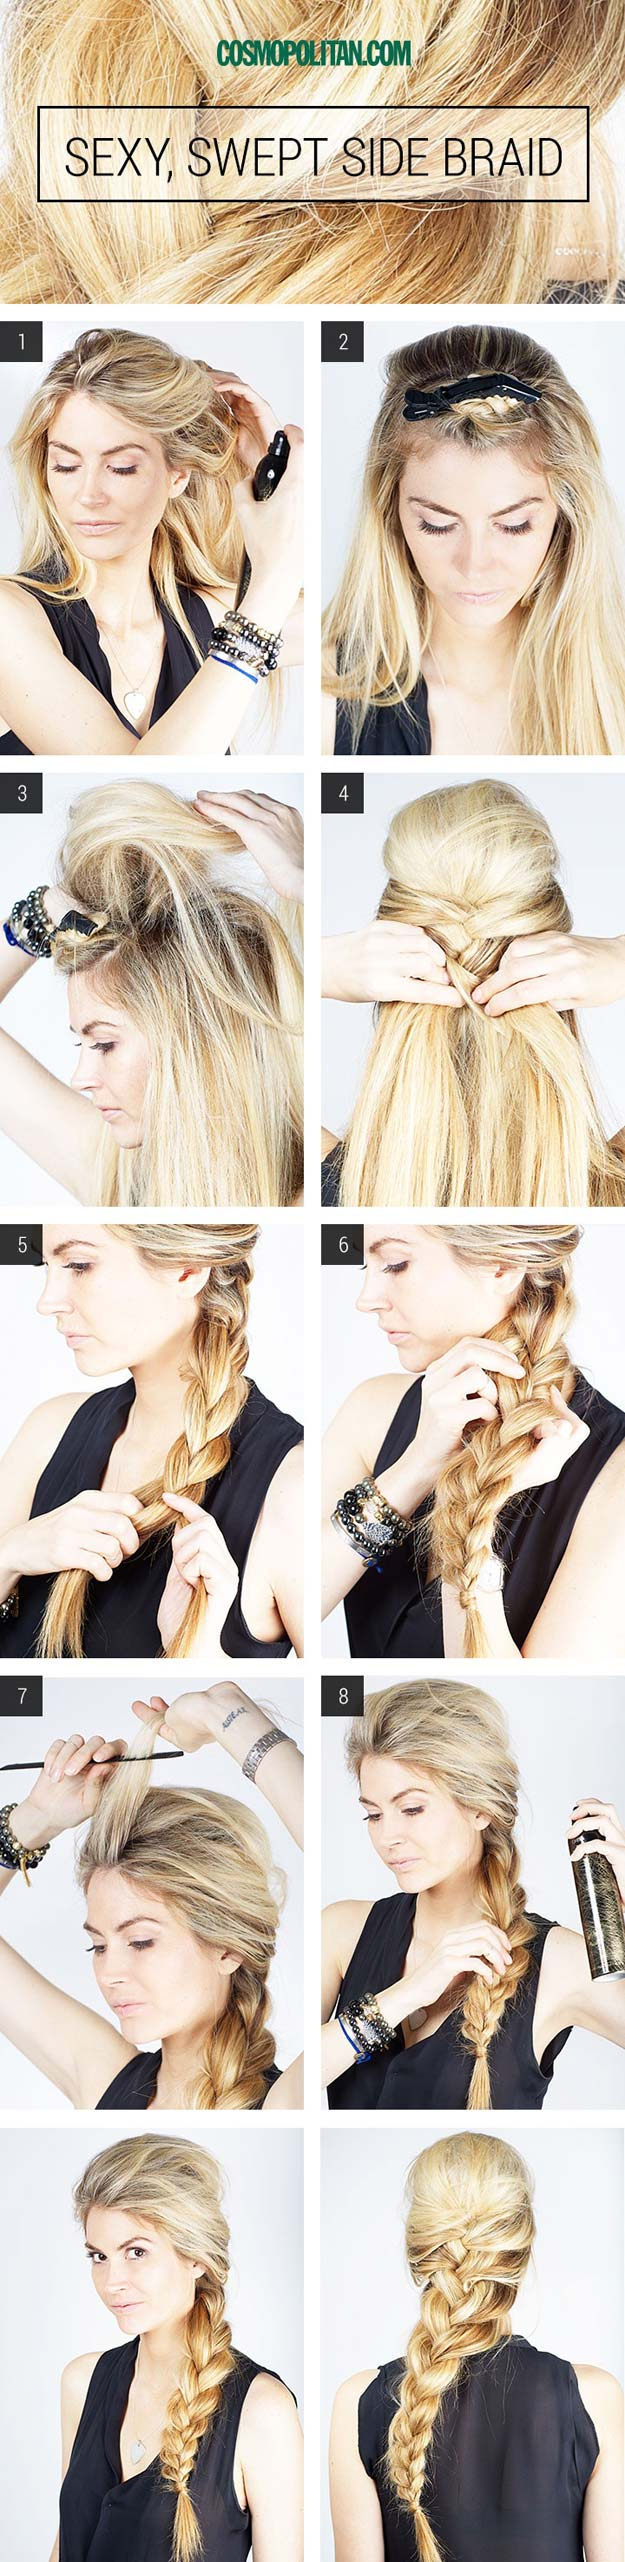 Best Hairstyles for Long Hair - Sexy Swept Side Braid - Step by Step Tutorials for Easy Curls, Updo, Half Up, Braids and Lazy Girl Looks. Prom Ideas, Special Occasion Hair and Braiding Instructions for Teens, Teenagers and Adults, Women and Girls http://diyprojectsforteens.com/best-hairstyles-long-hair